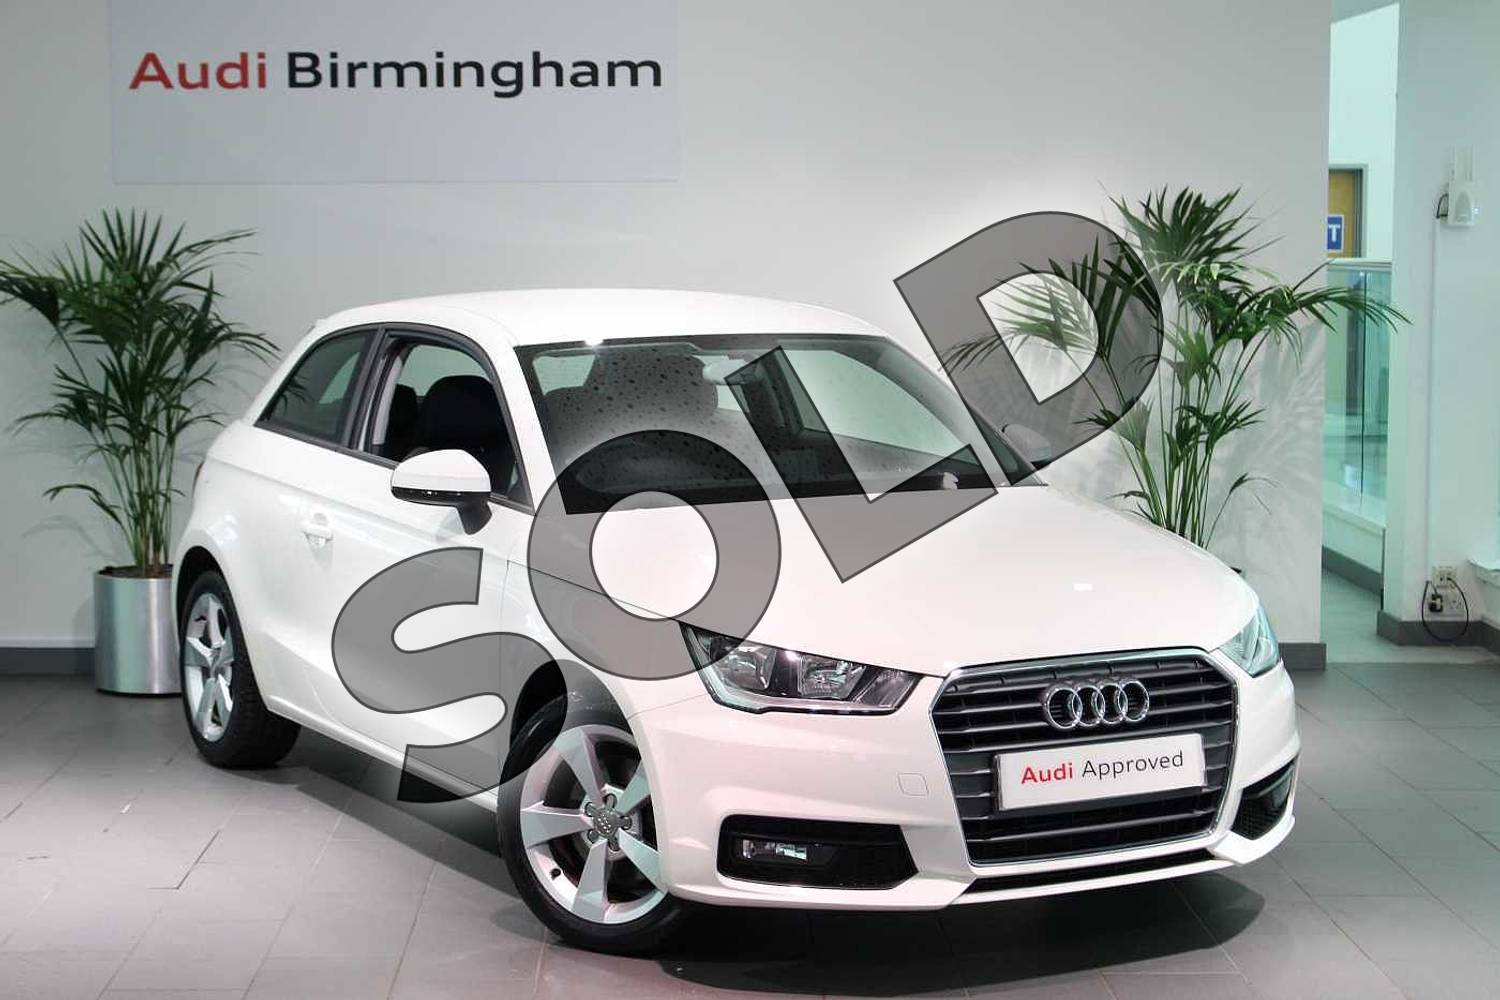 2016 Audi A1 Hatchback 1.4 TFSI Sport 3dr in Shell White at Birmingham Audi